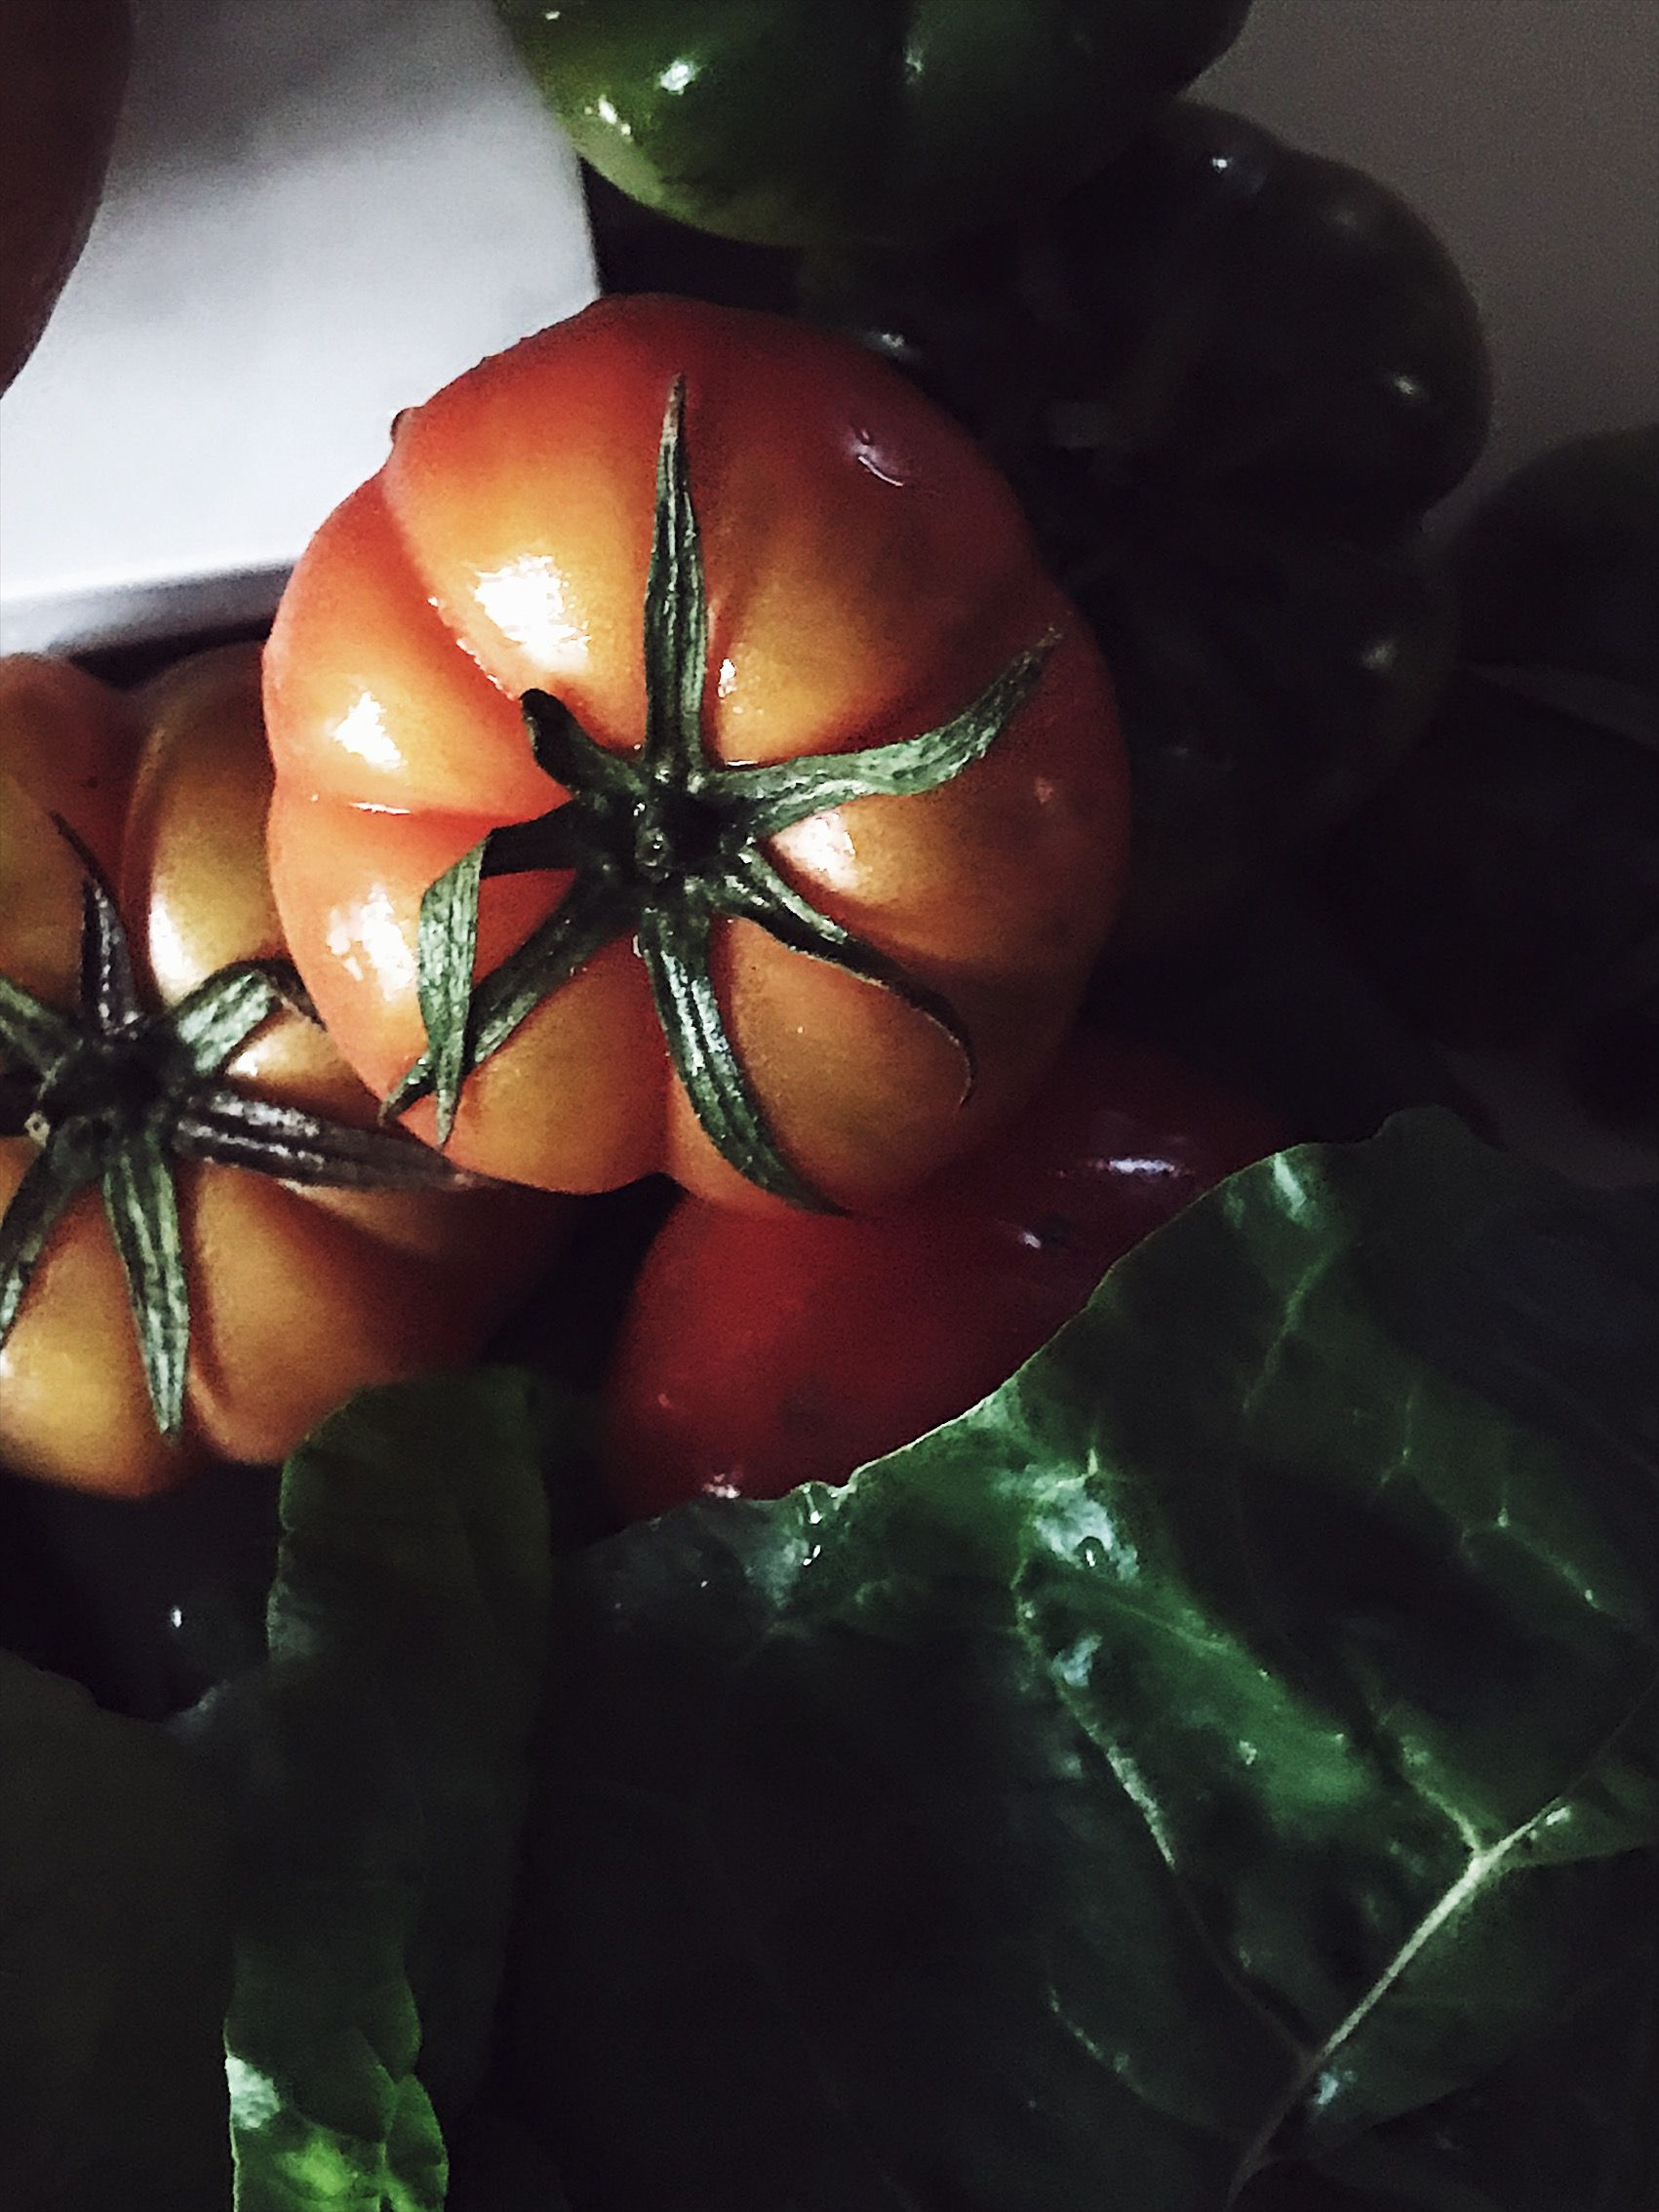 first tomatoes from Southern Italy